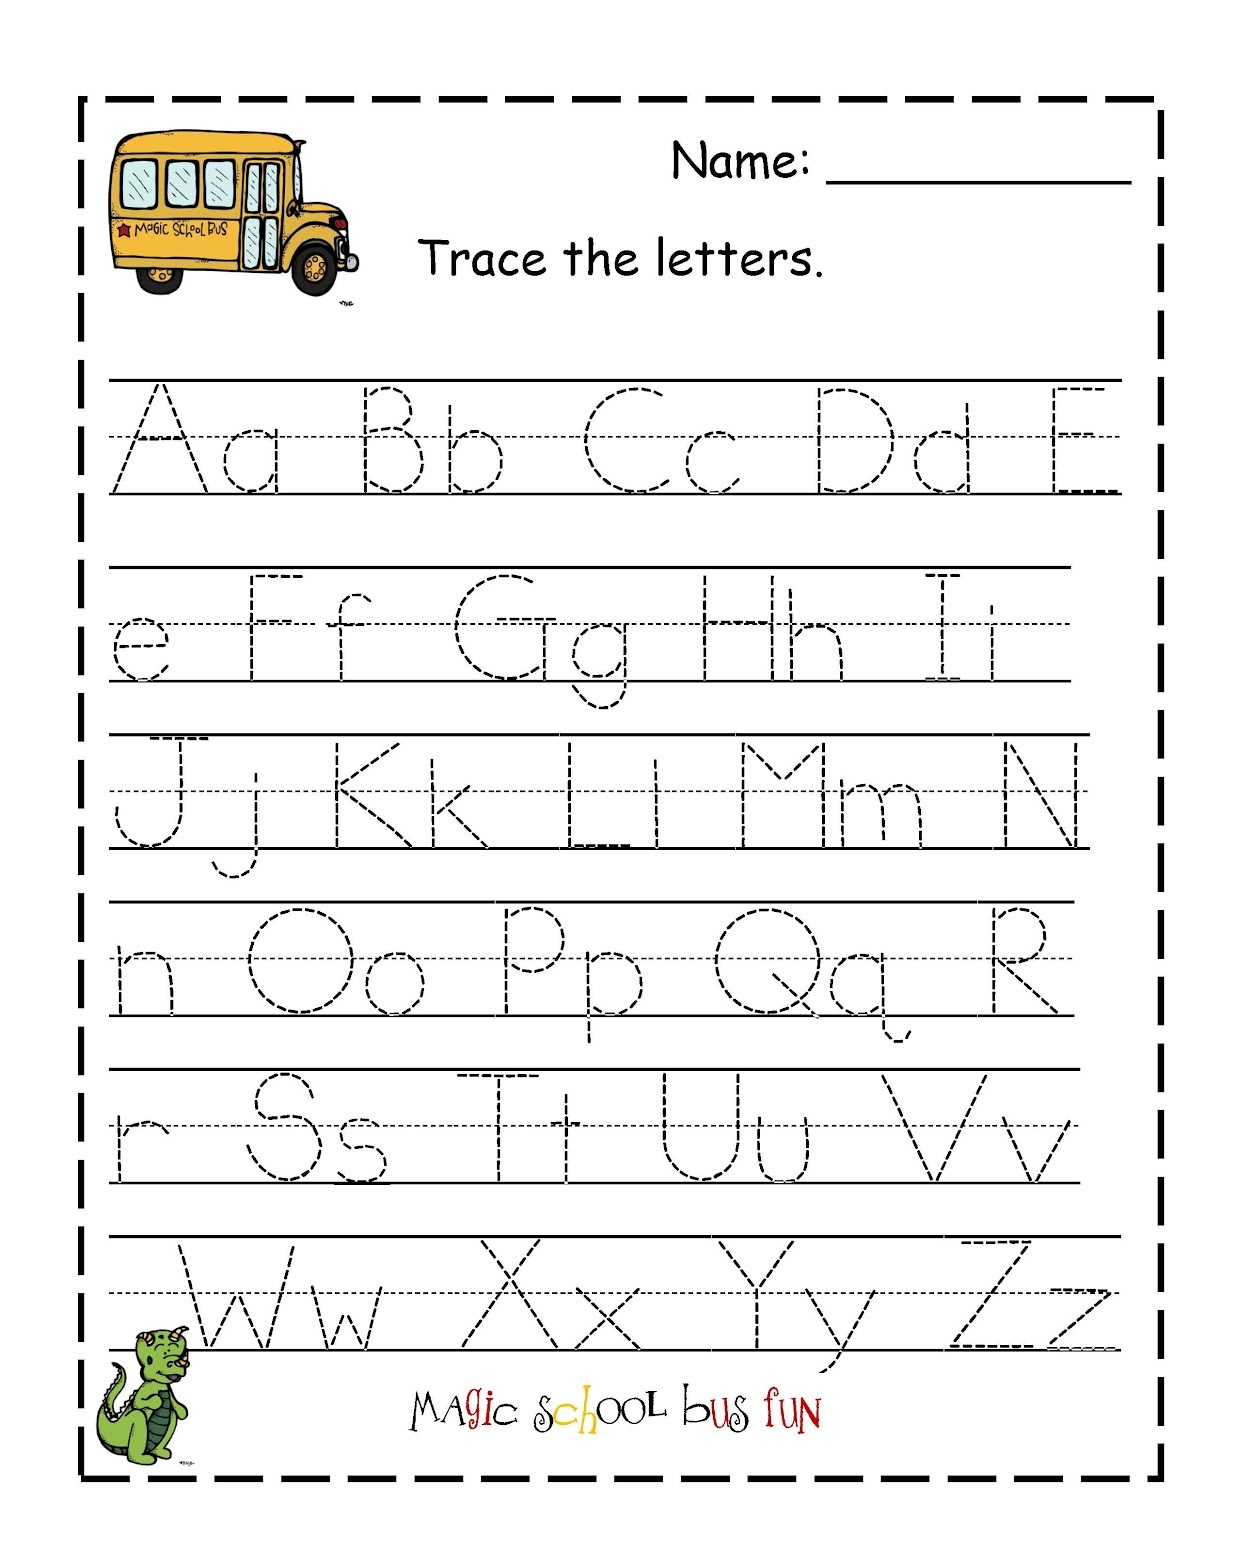 Traceable Letter Worksheets to Print | Activity Shelter